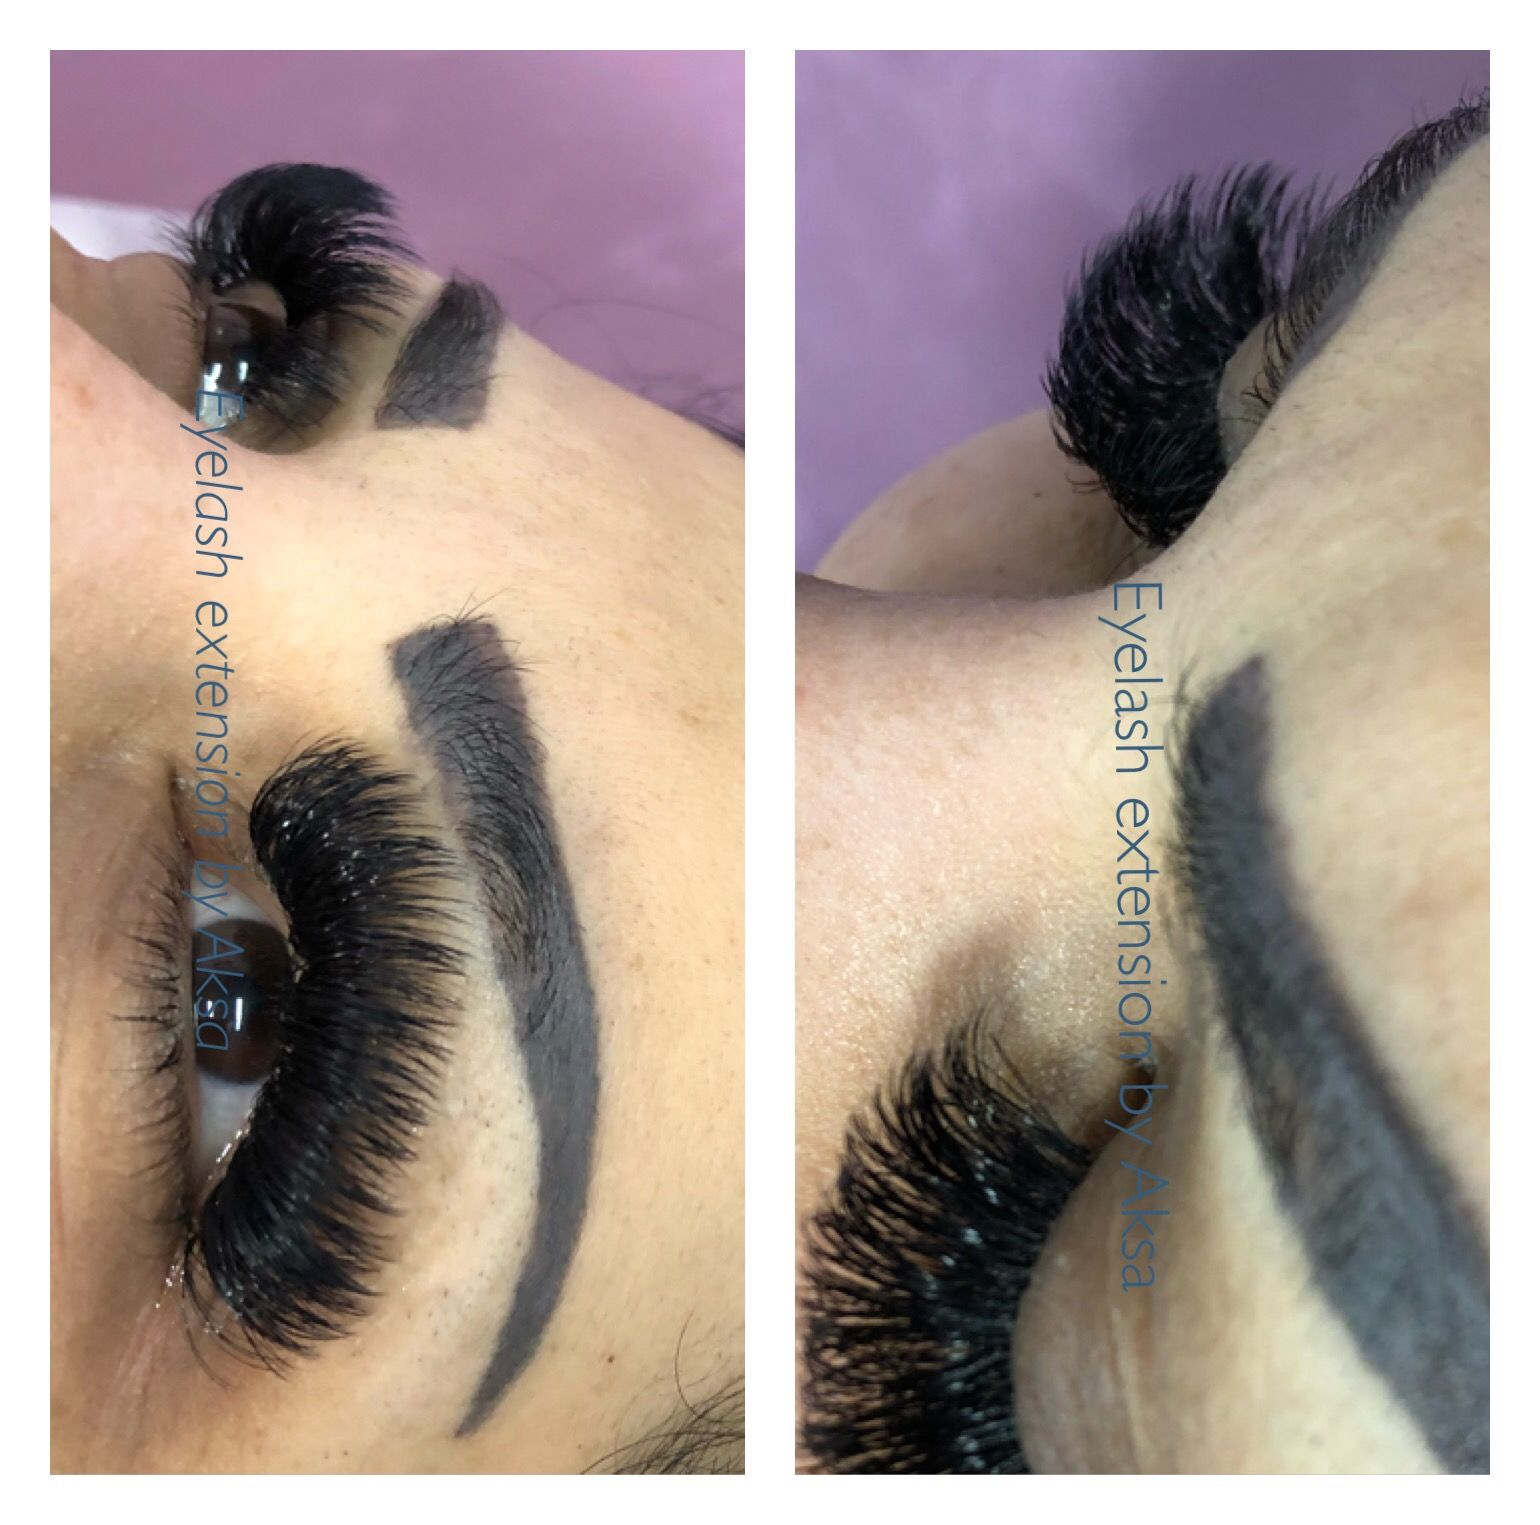 f8963226a48 Mega volume Volume Lash Extensions, Eyebrow Extensions, Curling Eyelashes,  Mink Eyelashes, Eyelash